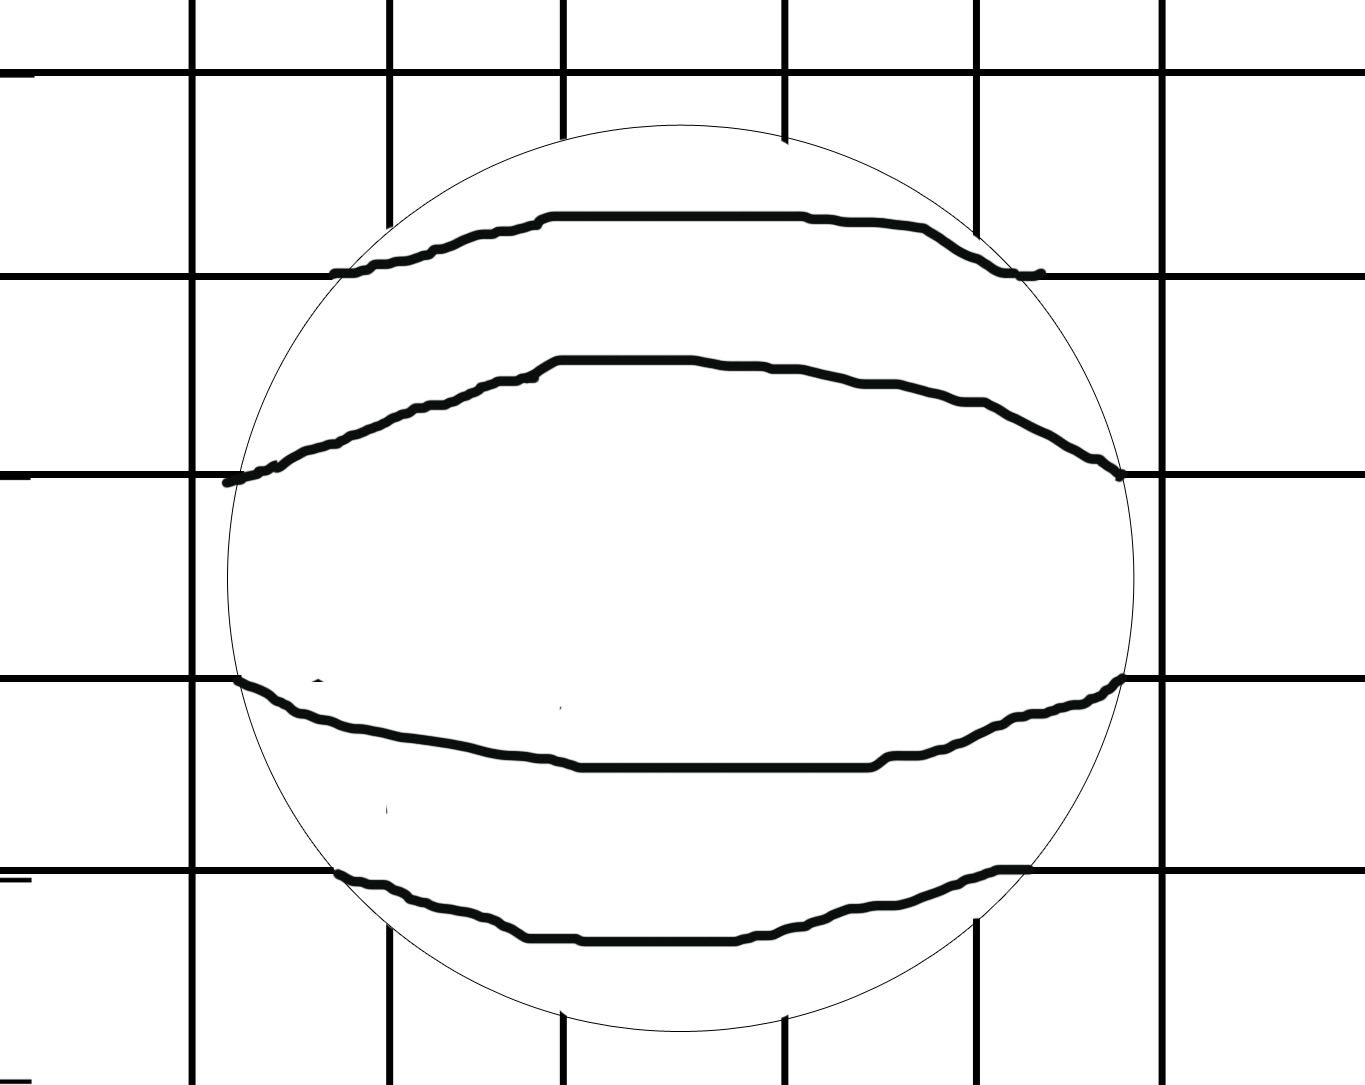 Clip Art Coloring Pages Optical Illusions optical illusion coloring pages eassume com illusions eassume